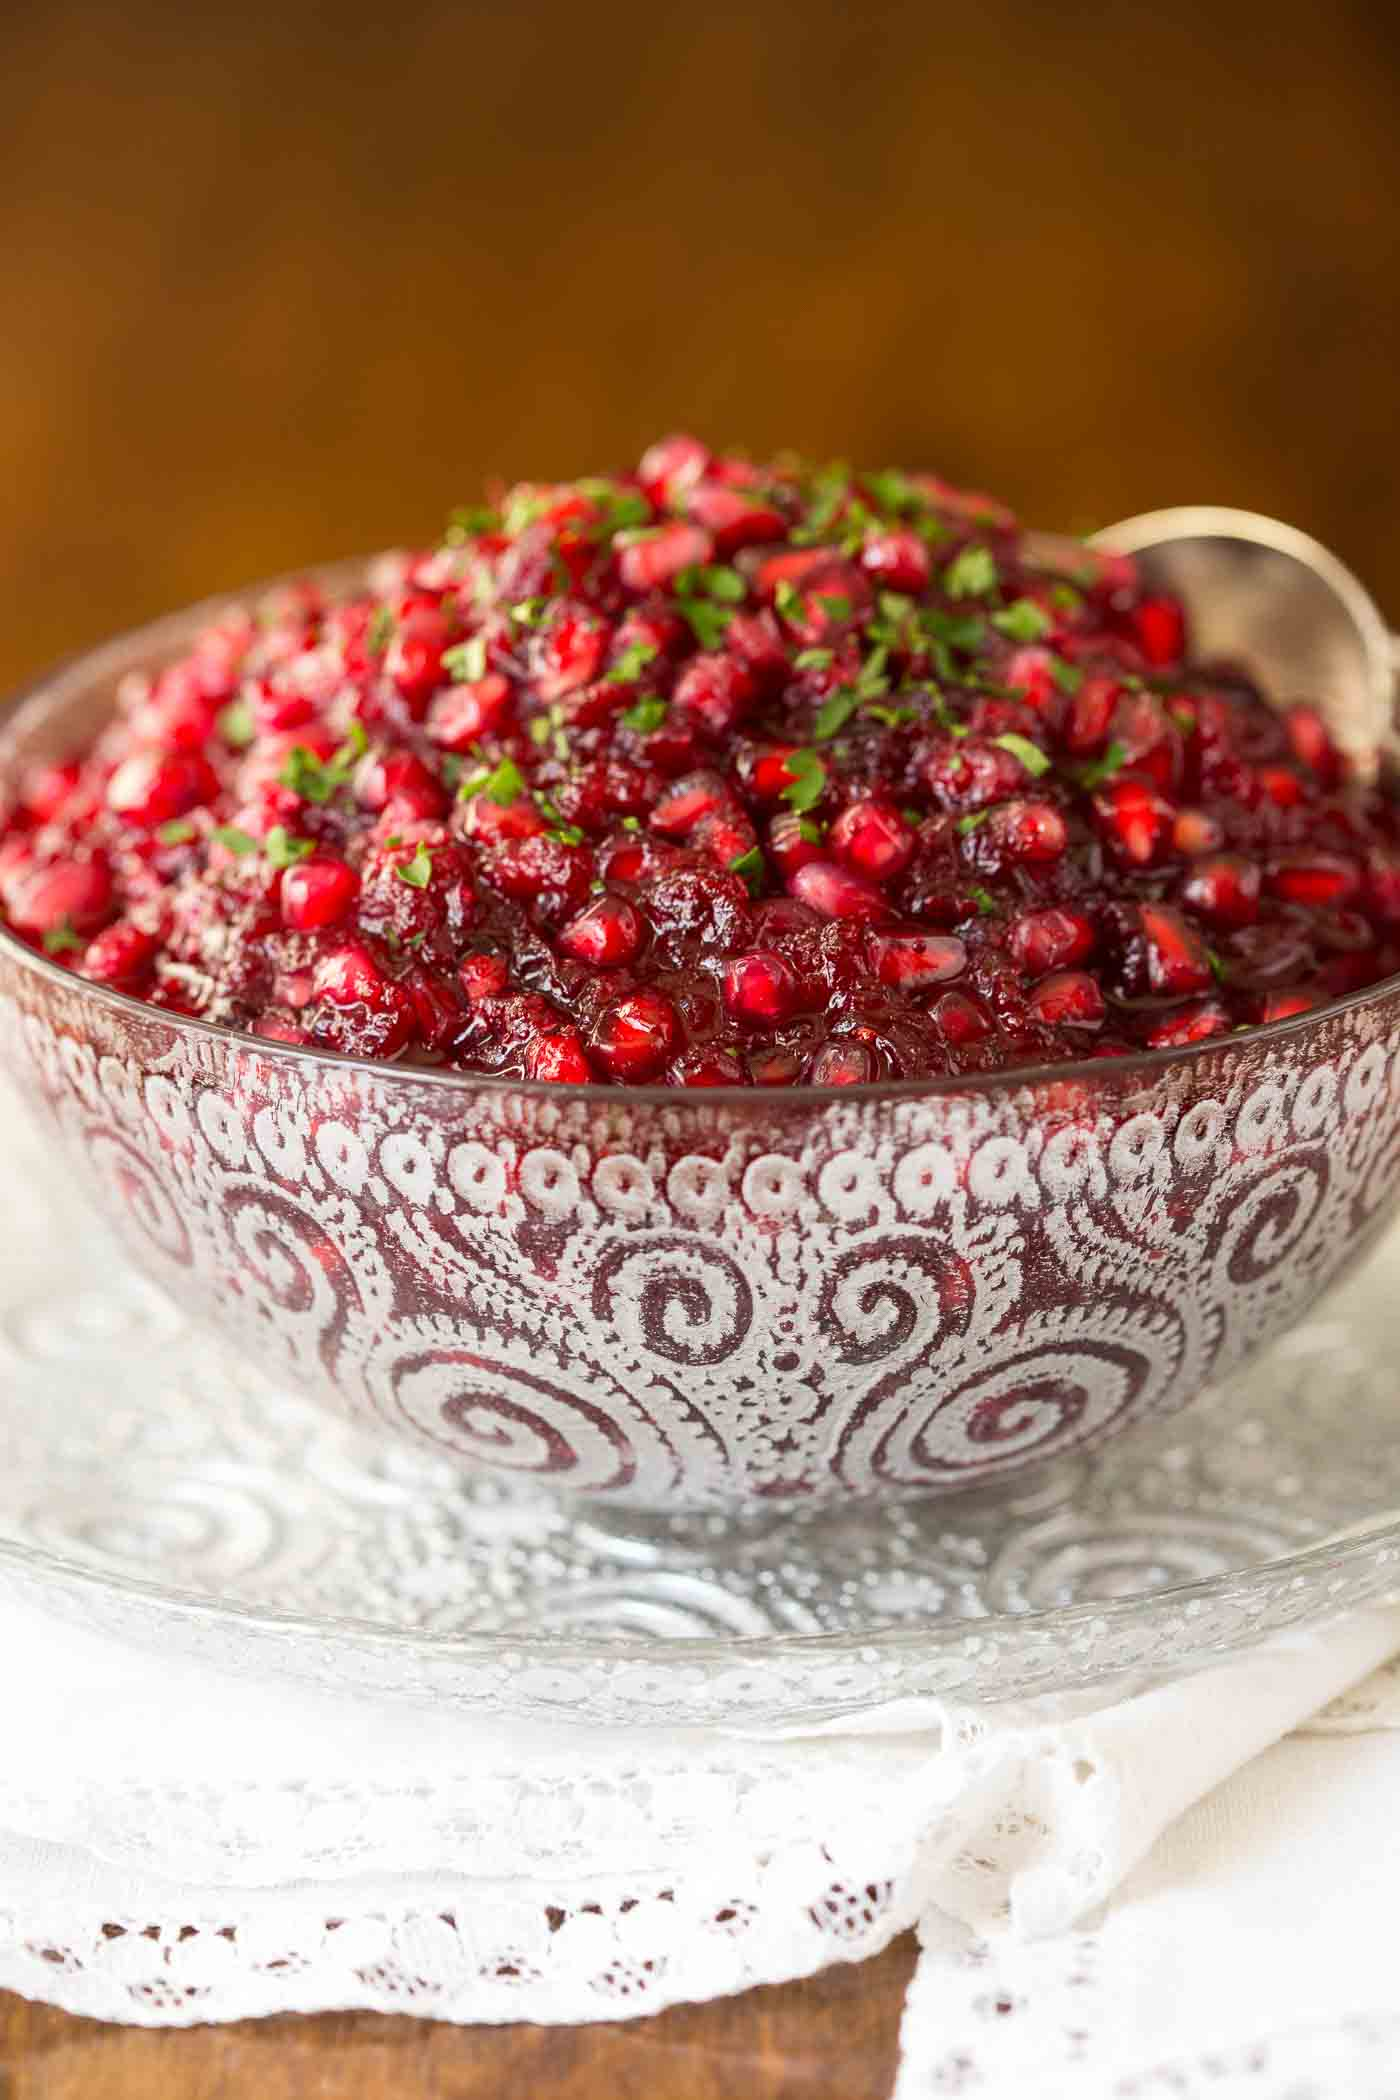 Photo of an etched glass bowl of Easy Cranberry Pomegranate Sauce on a saucer sitting on a wood table.